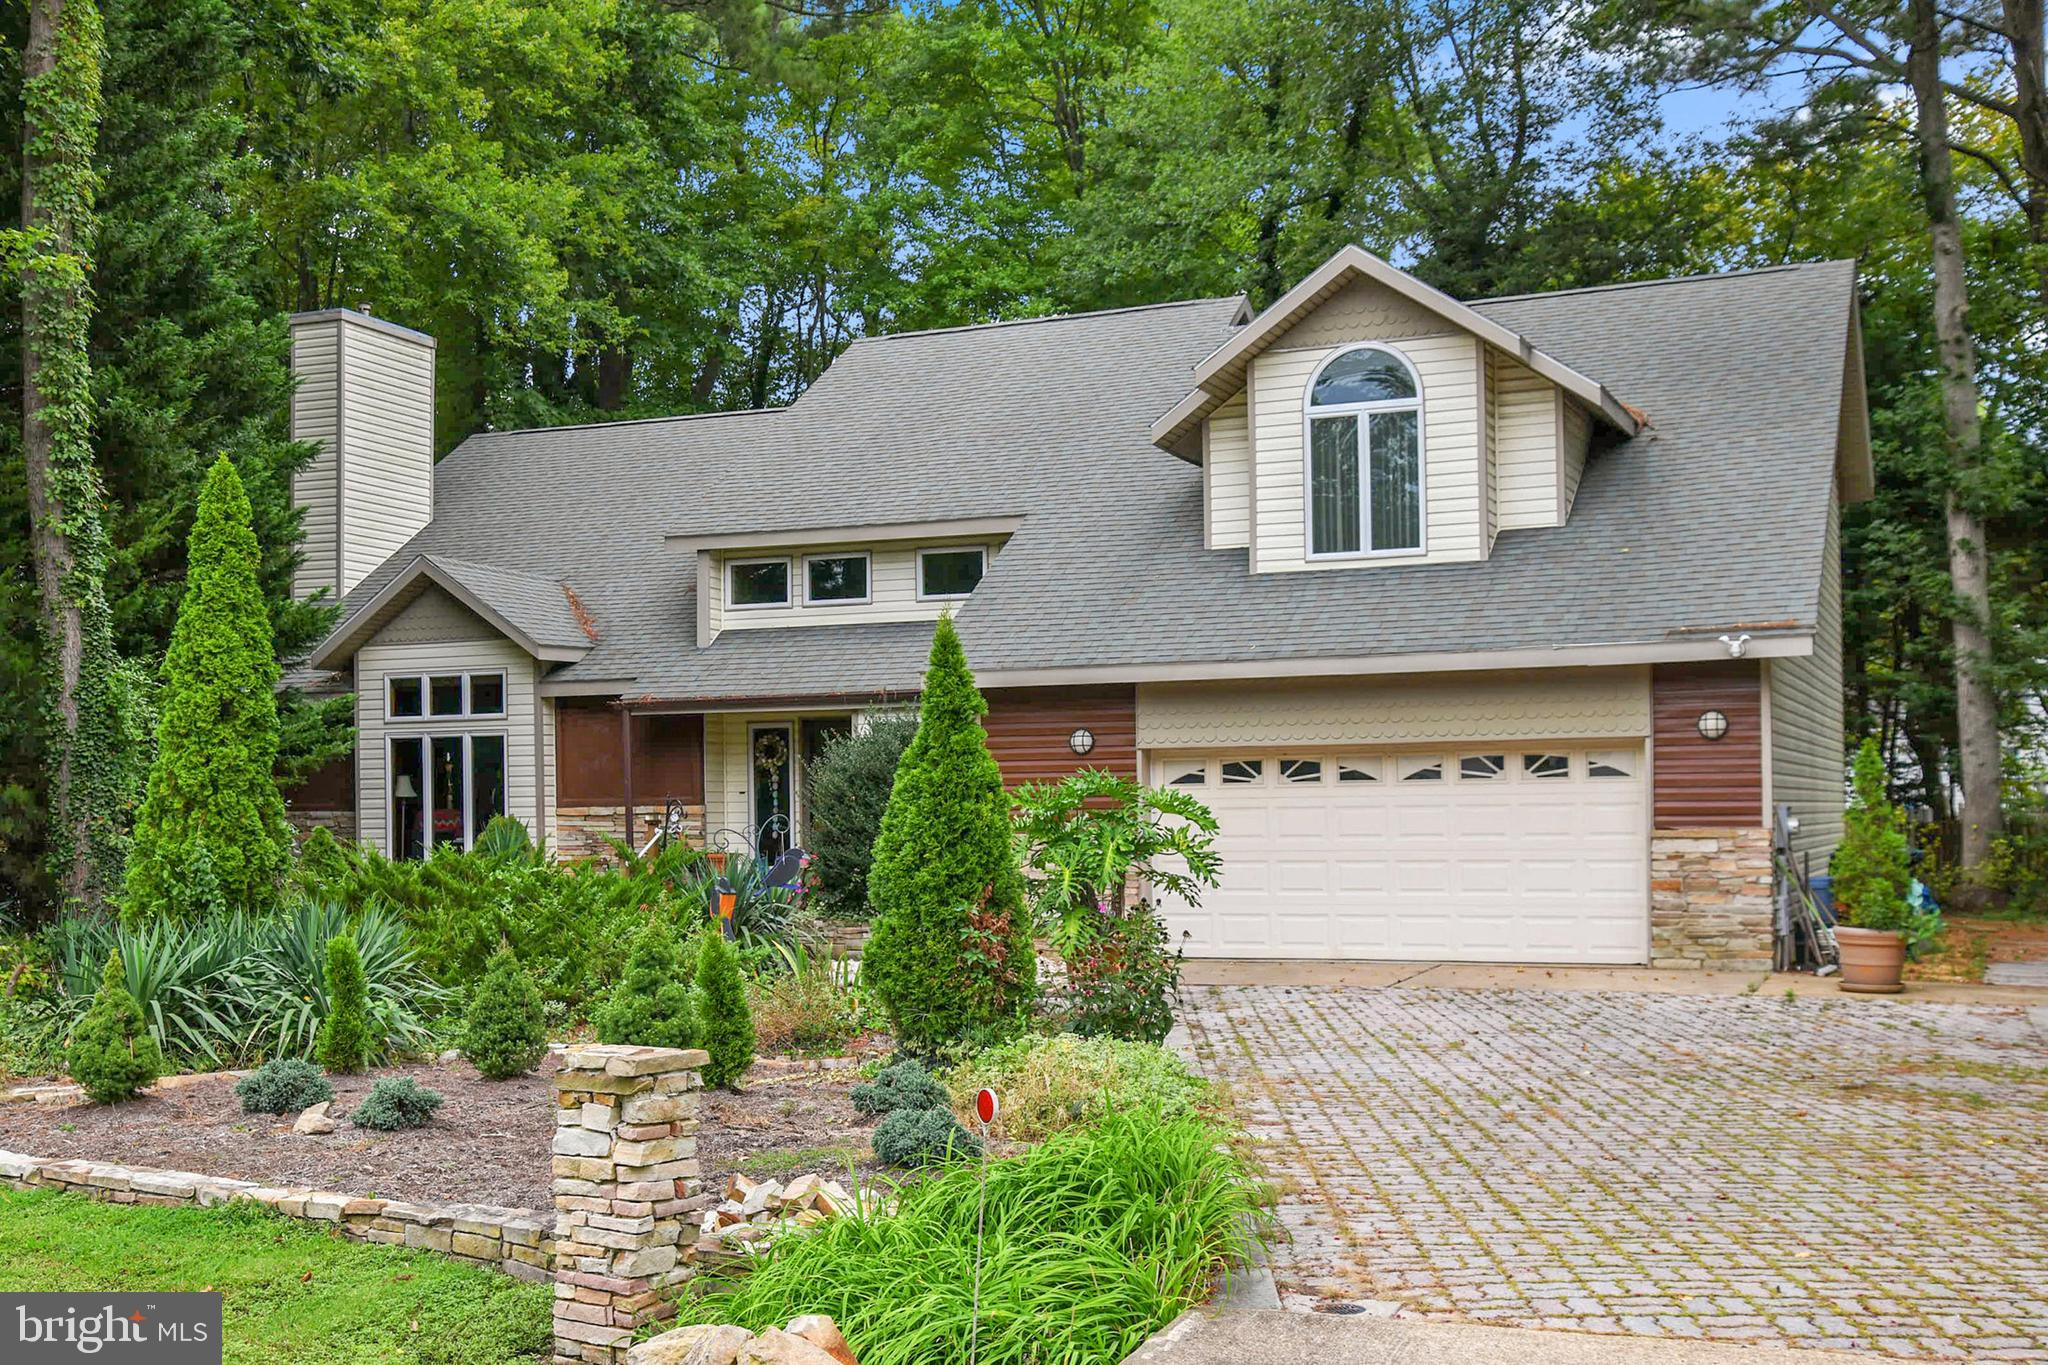 A 4 BD, 2.5 BA home on a pretty half+ acre lot is back on the market in Fox Chapel, a sought-after a